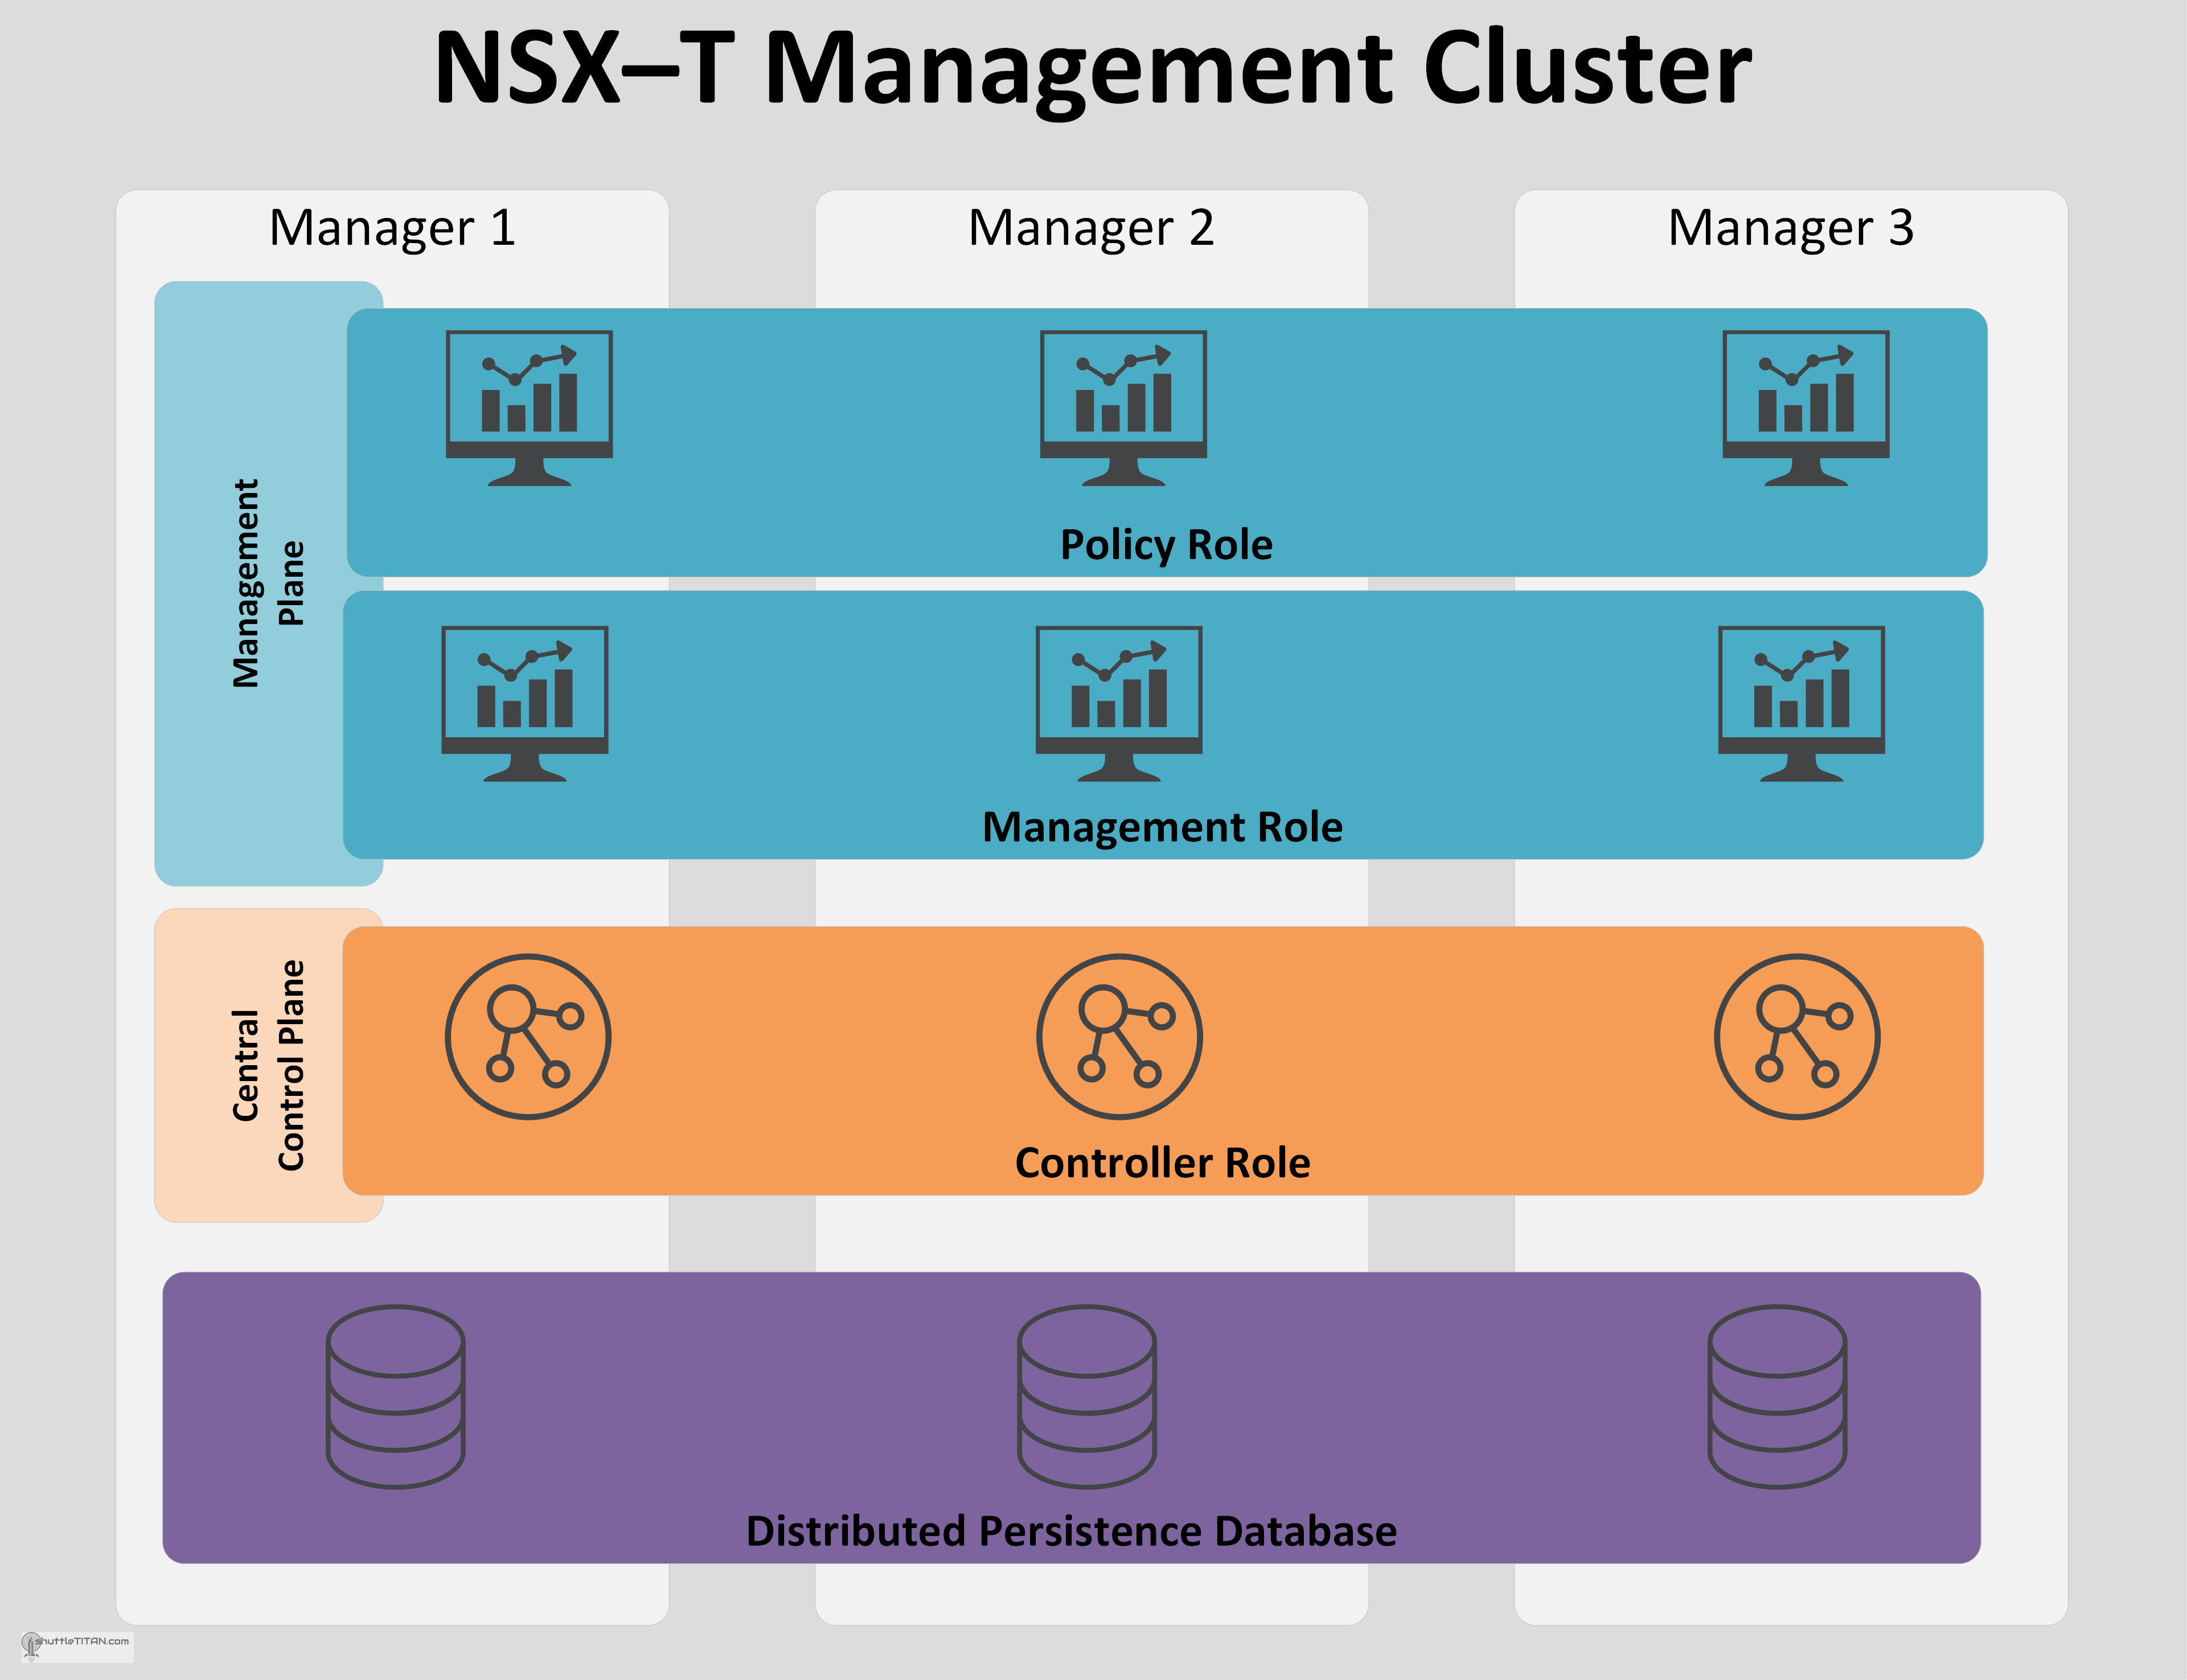 NSX-T Management Cluster: Benefits, Roles, CCP Sharding and failure handling